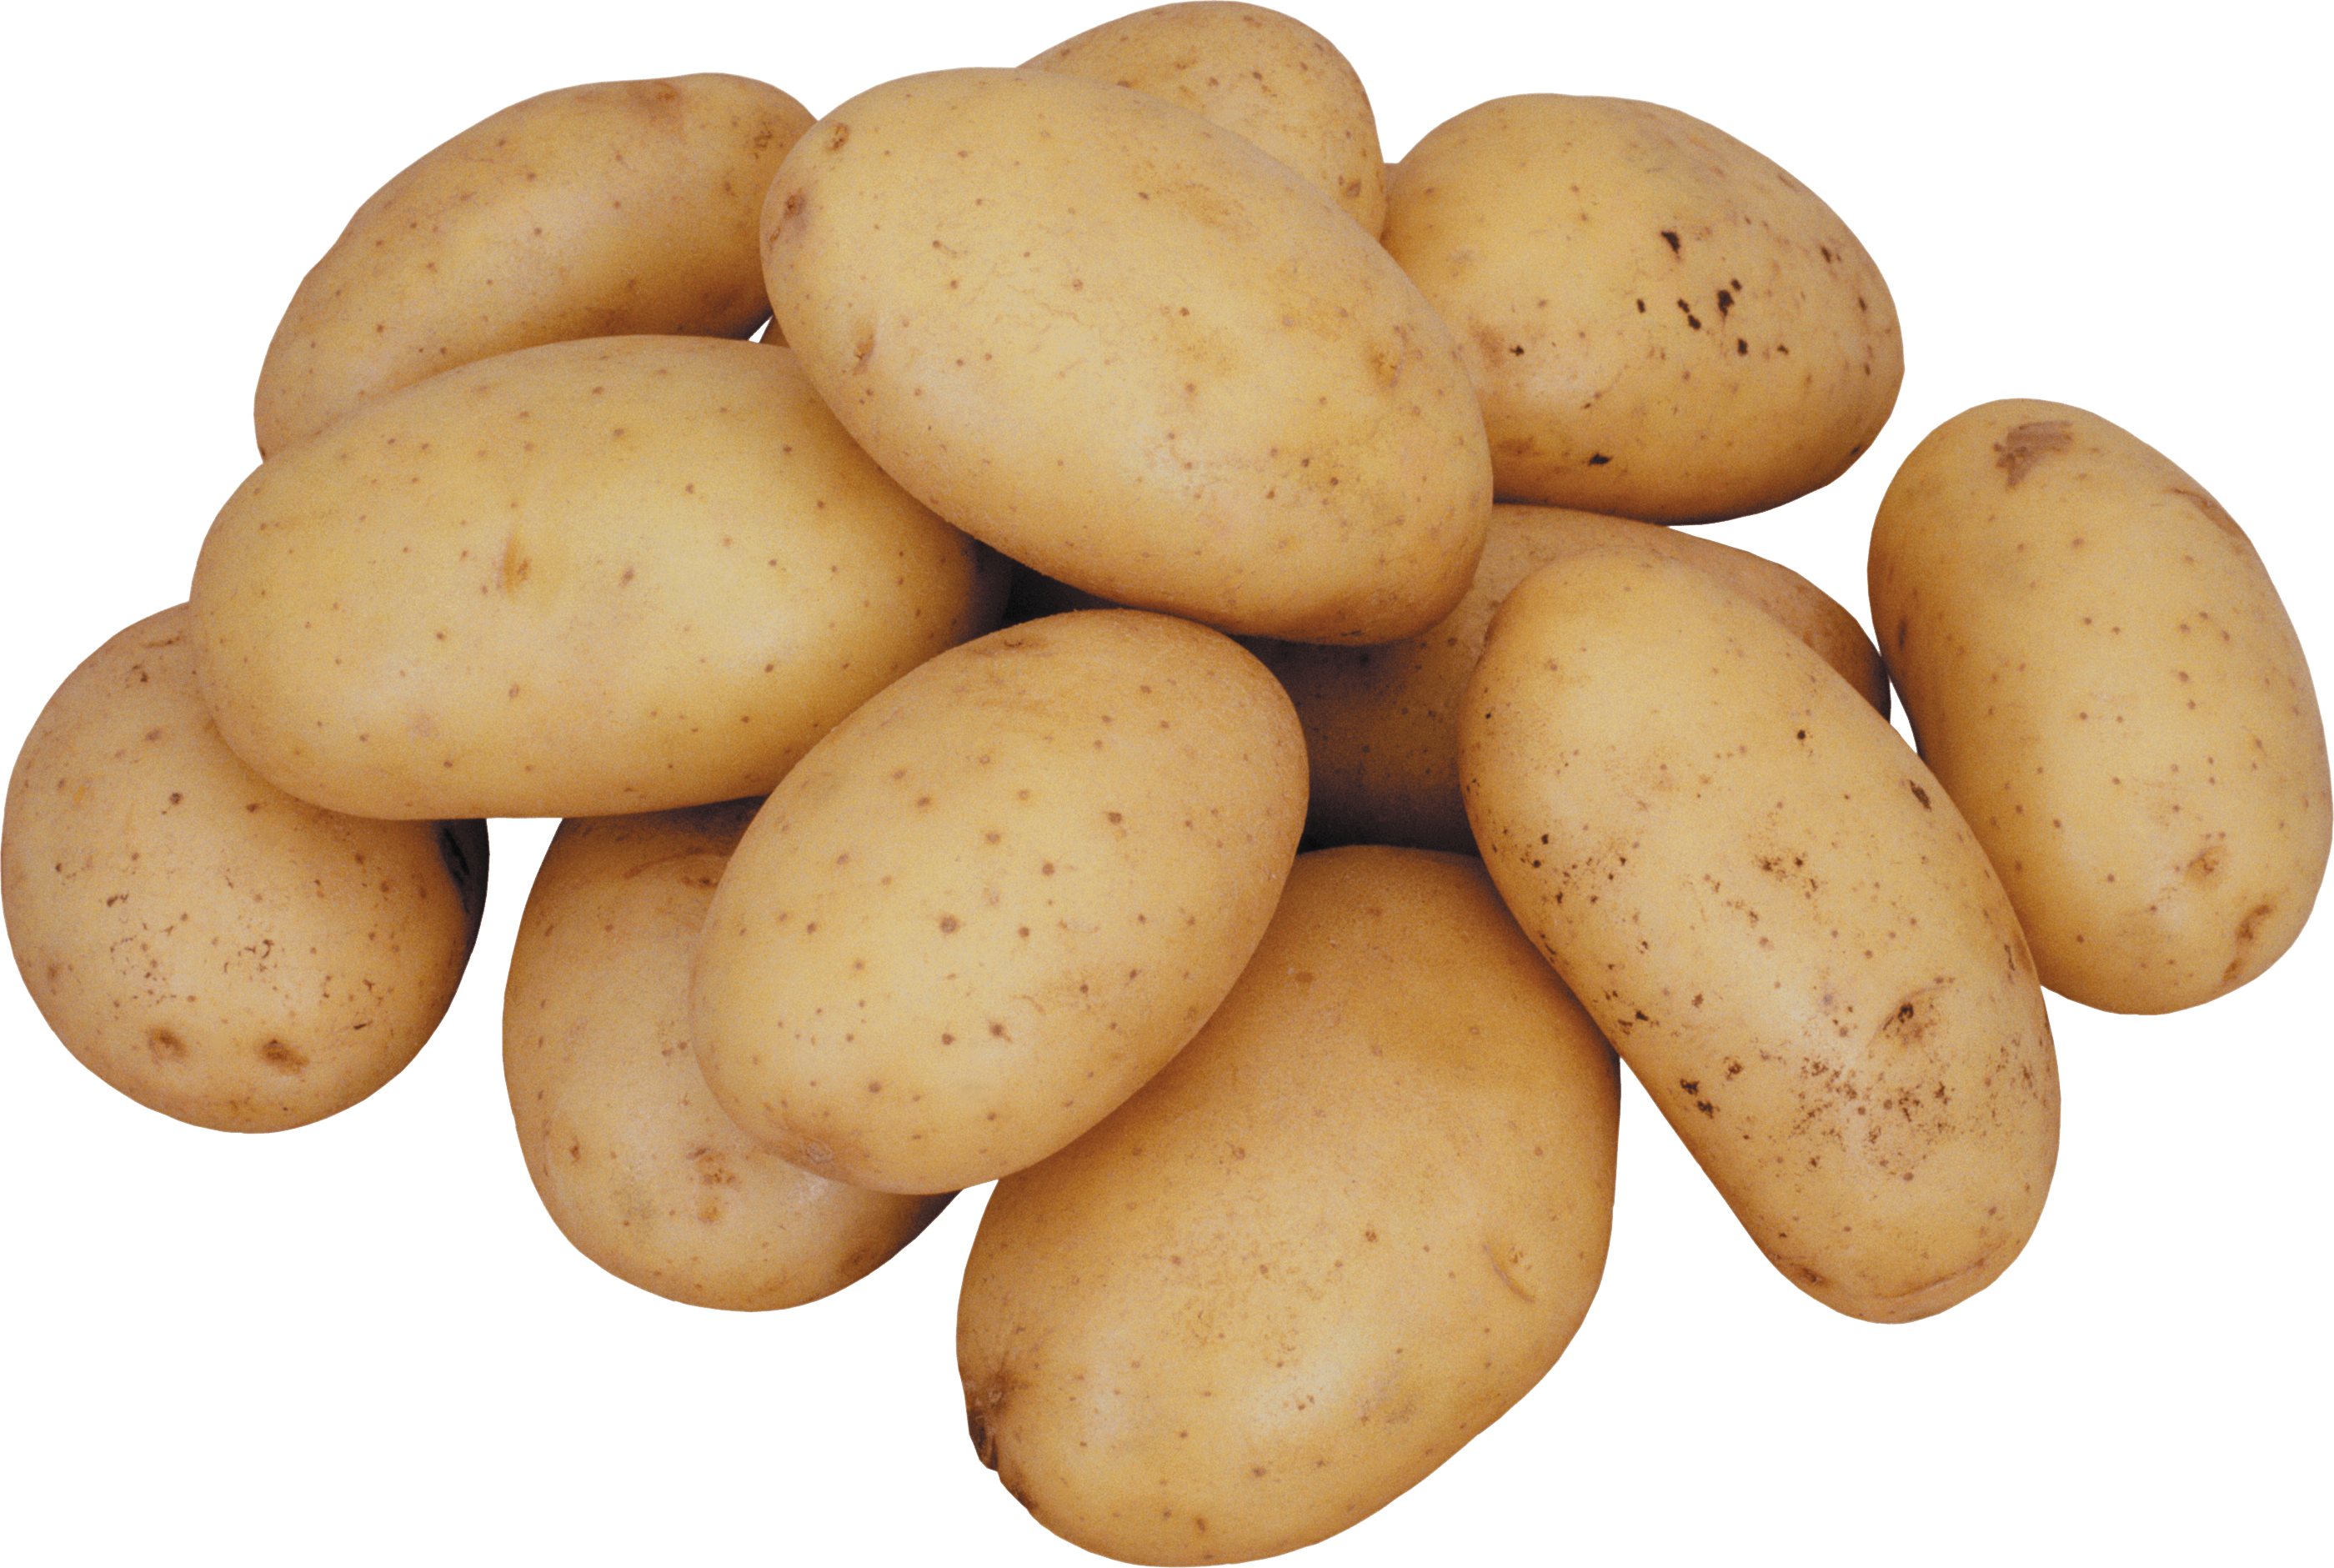 Download PNG image - Potato Png Images Pictures Download - Potato HD PNG